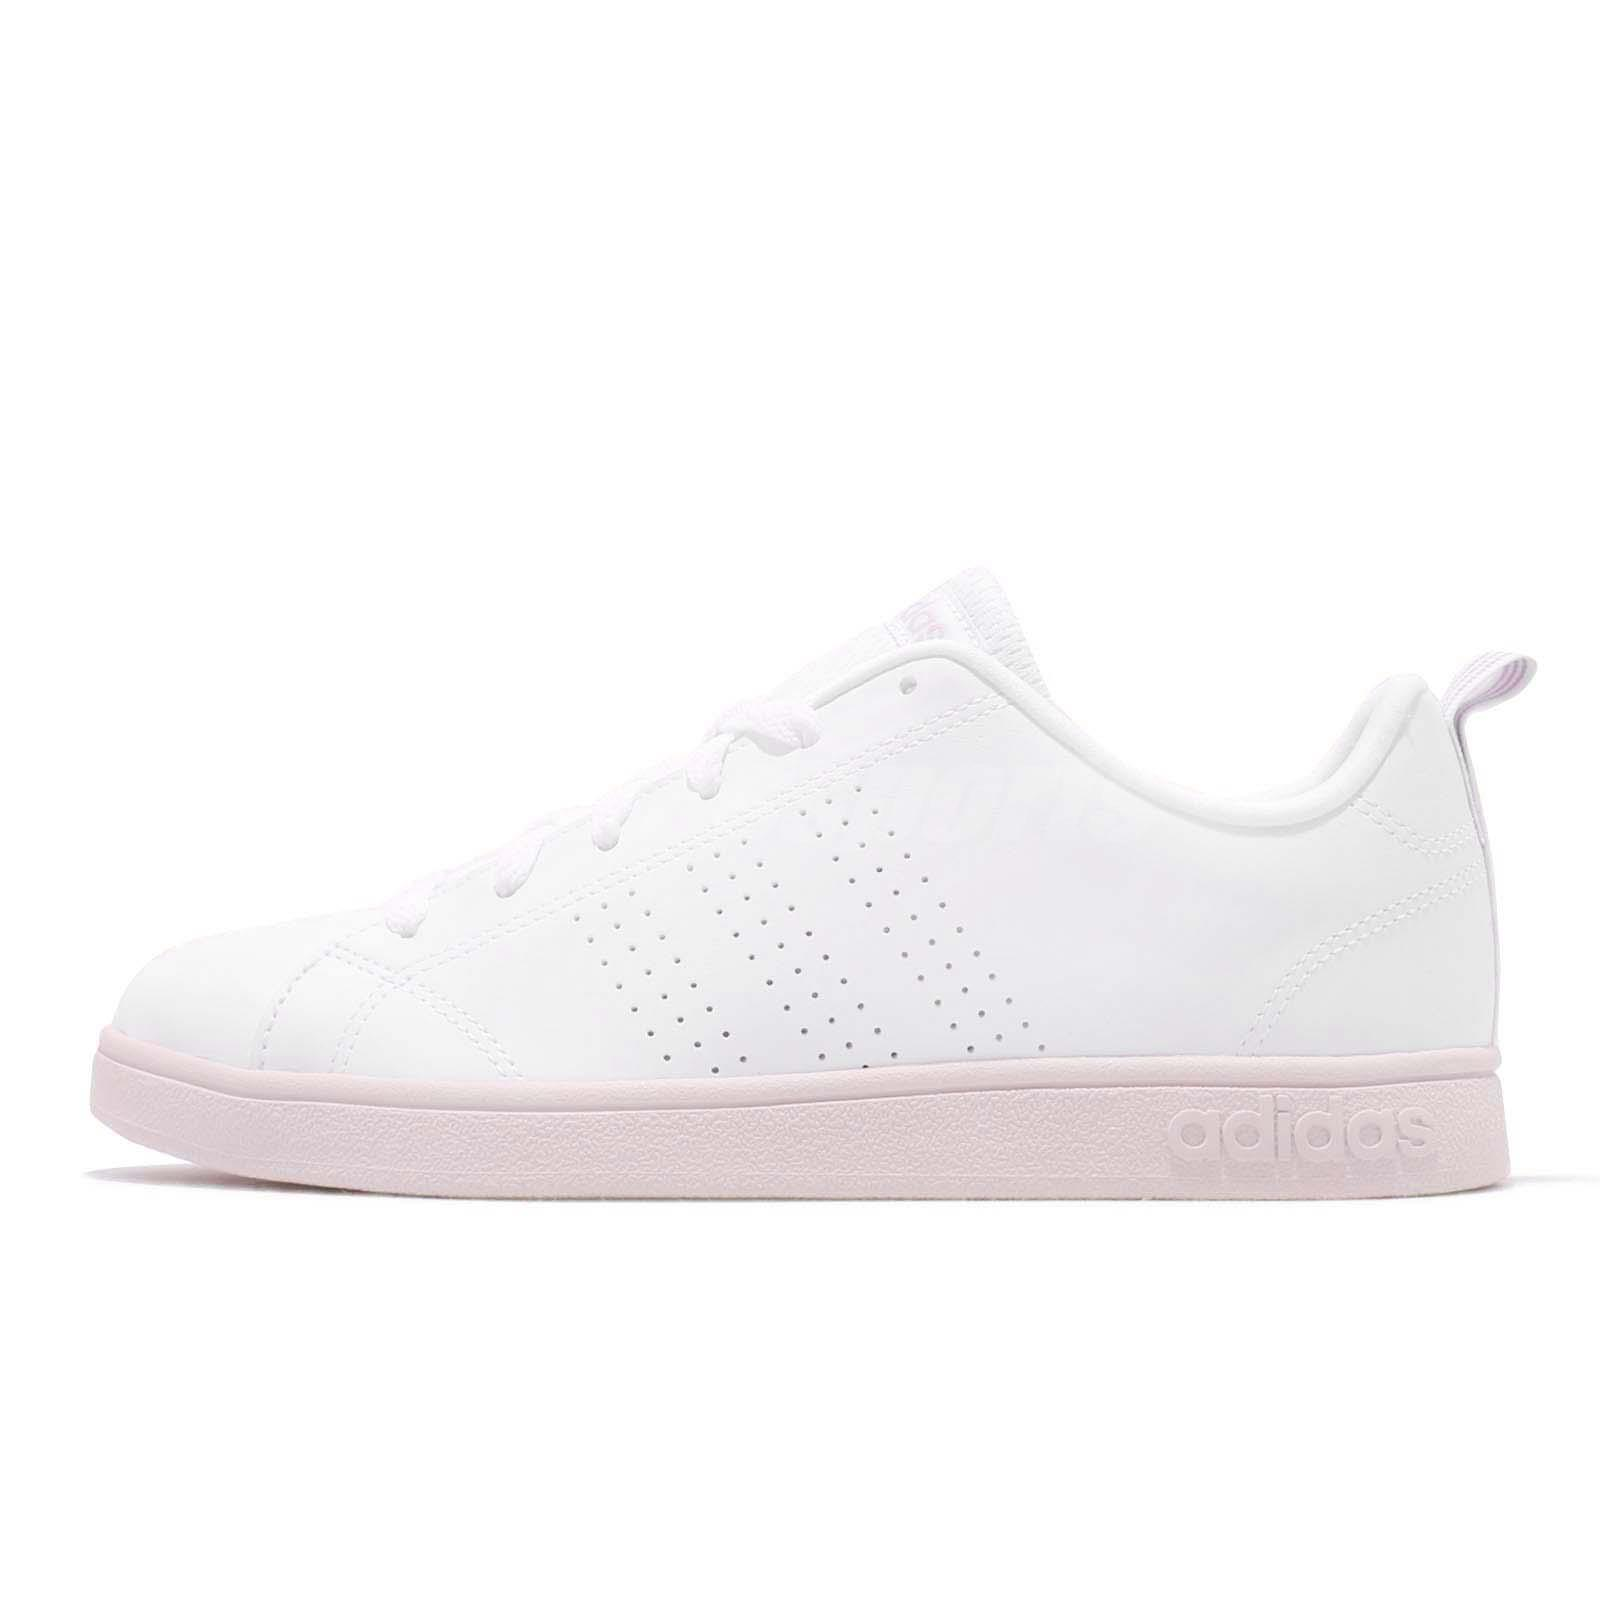 best sneakers a60b3 d0321 adidas Neo VS Advantage CL White Ice Purple Women Lifestyle Casual Shoes  B42186